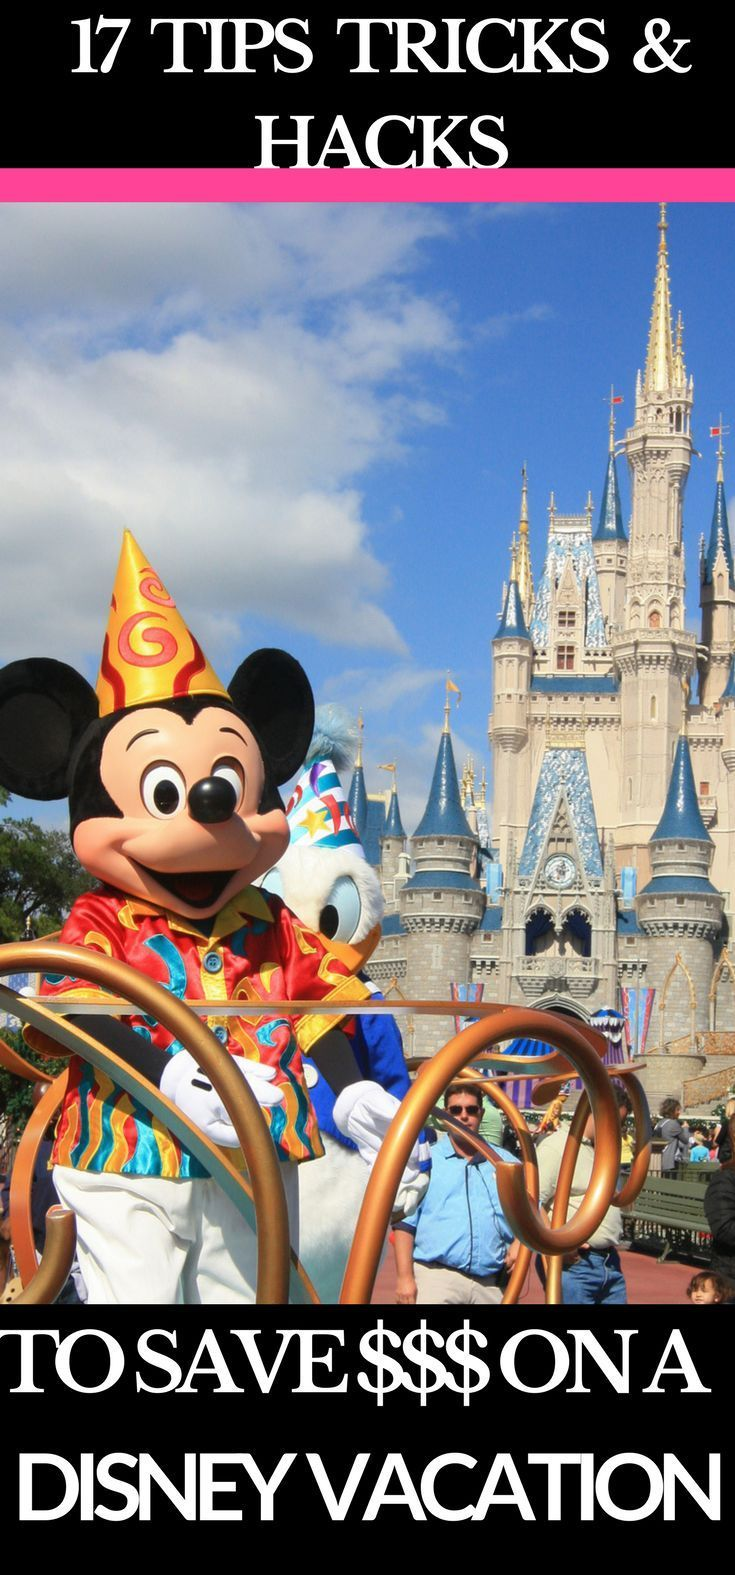 Disney World Tips & Tricks Is it possible to budget for Disney World without missing out? Yes! Saving money on a Disney World vacation is easy with these tips and tricks from a life long Disney traveling mother! I've put together a list of my best tips and money saving tricks for you to plan your family Disney vacation so you can save money and have fun without missing out on a thing! #DisneyWorld #DisneyWorldTips #traveltips